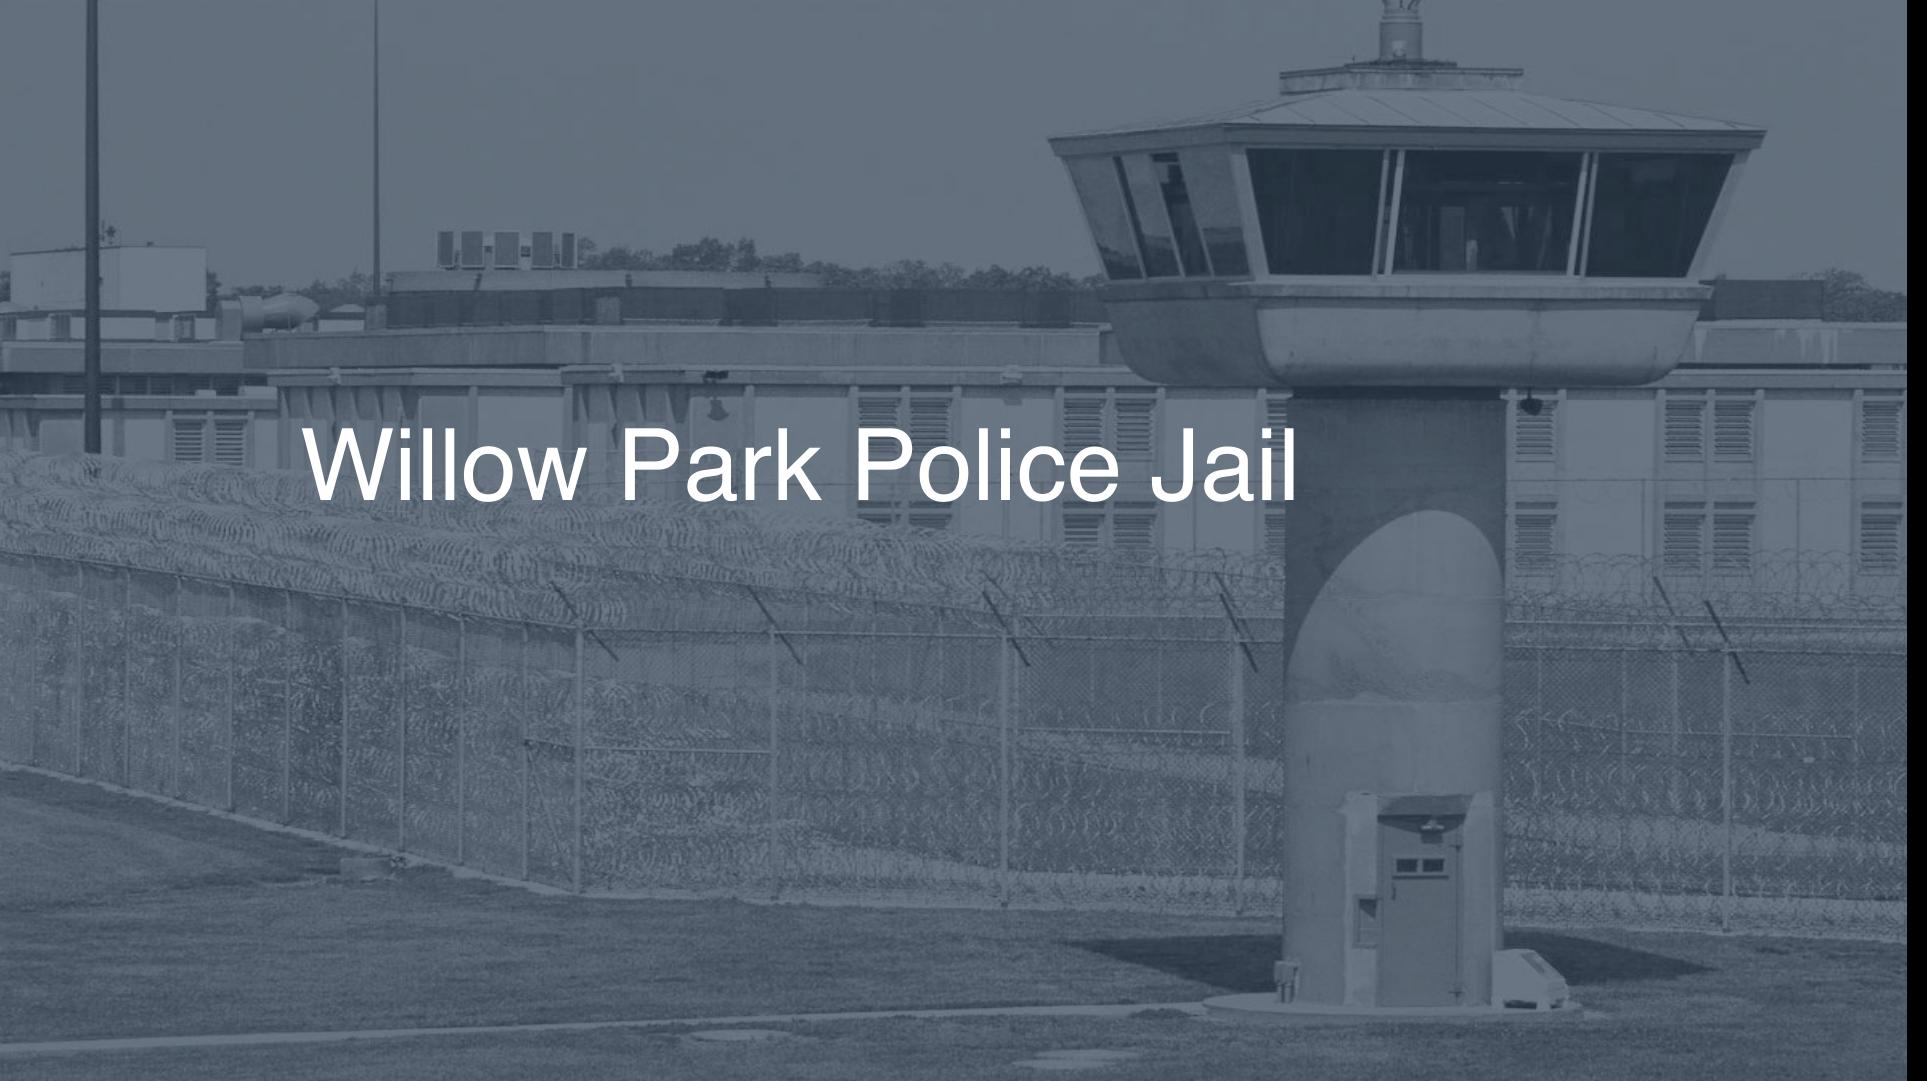 Willow Park Police Jail correctional facility picture